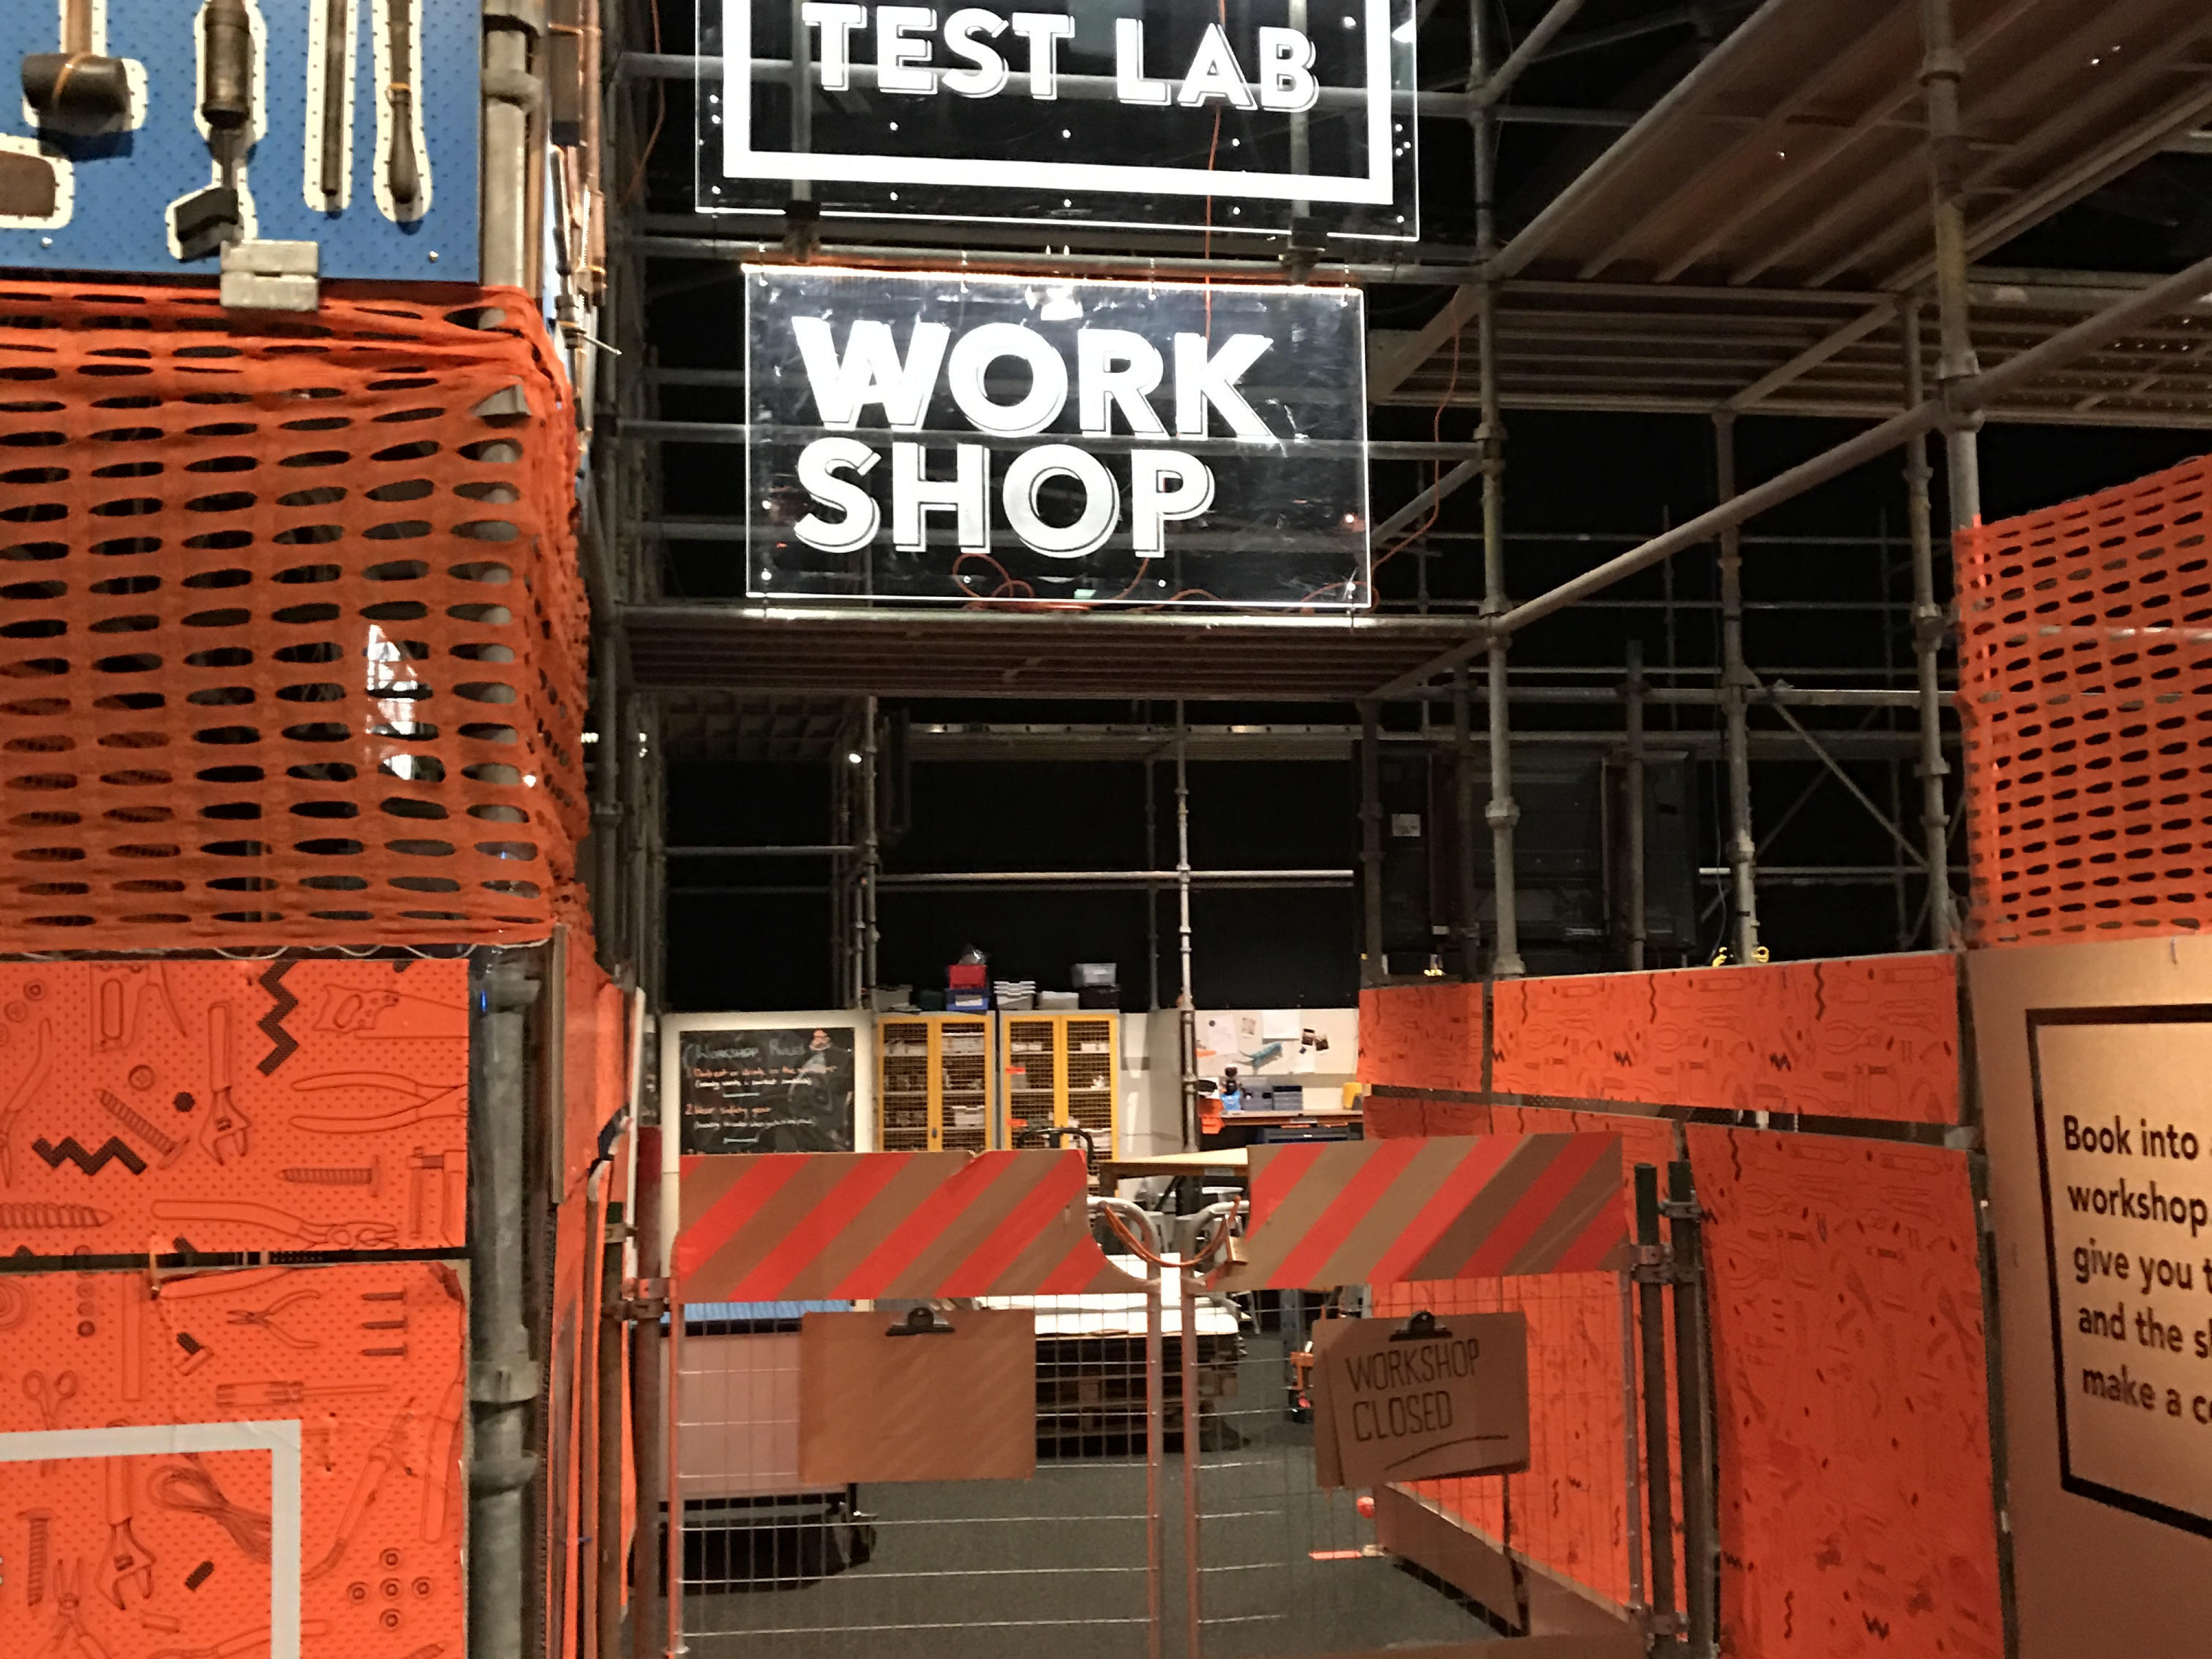 Science works - Test Lab